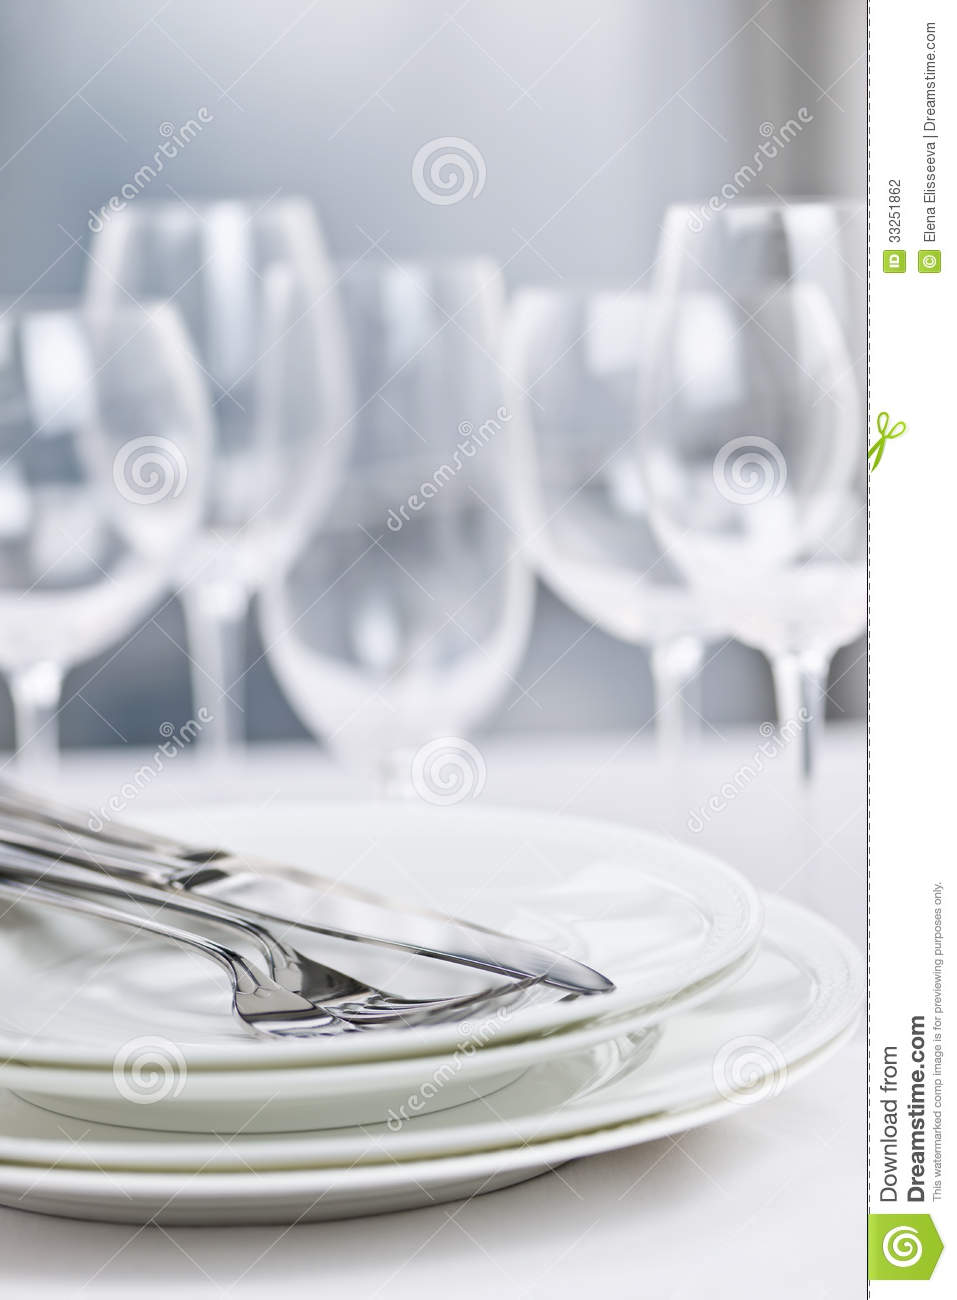 Plates and cutlery stock photo image of silver knives 33251862 - Fine dining table layout ...